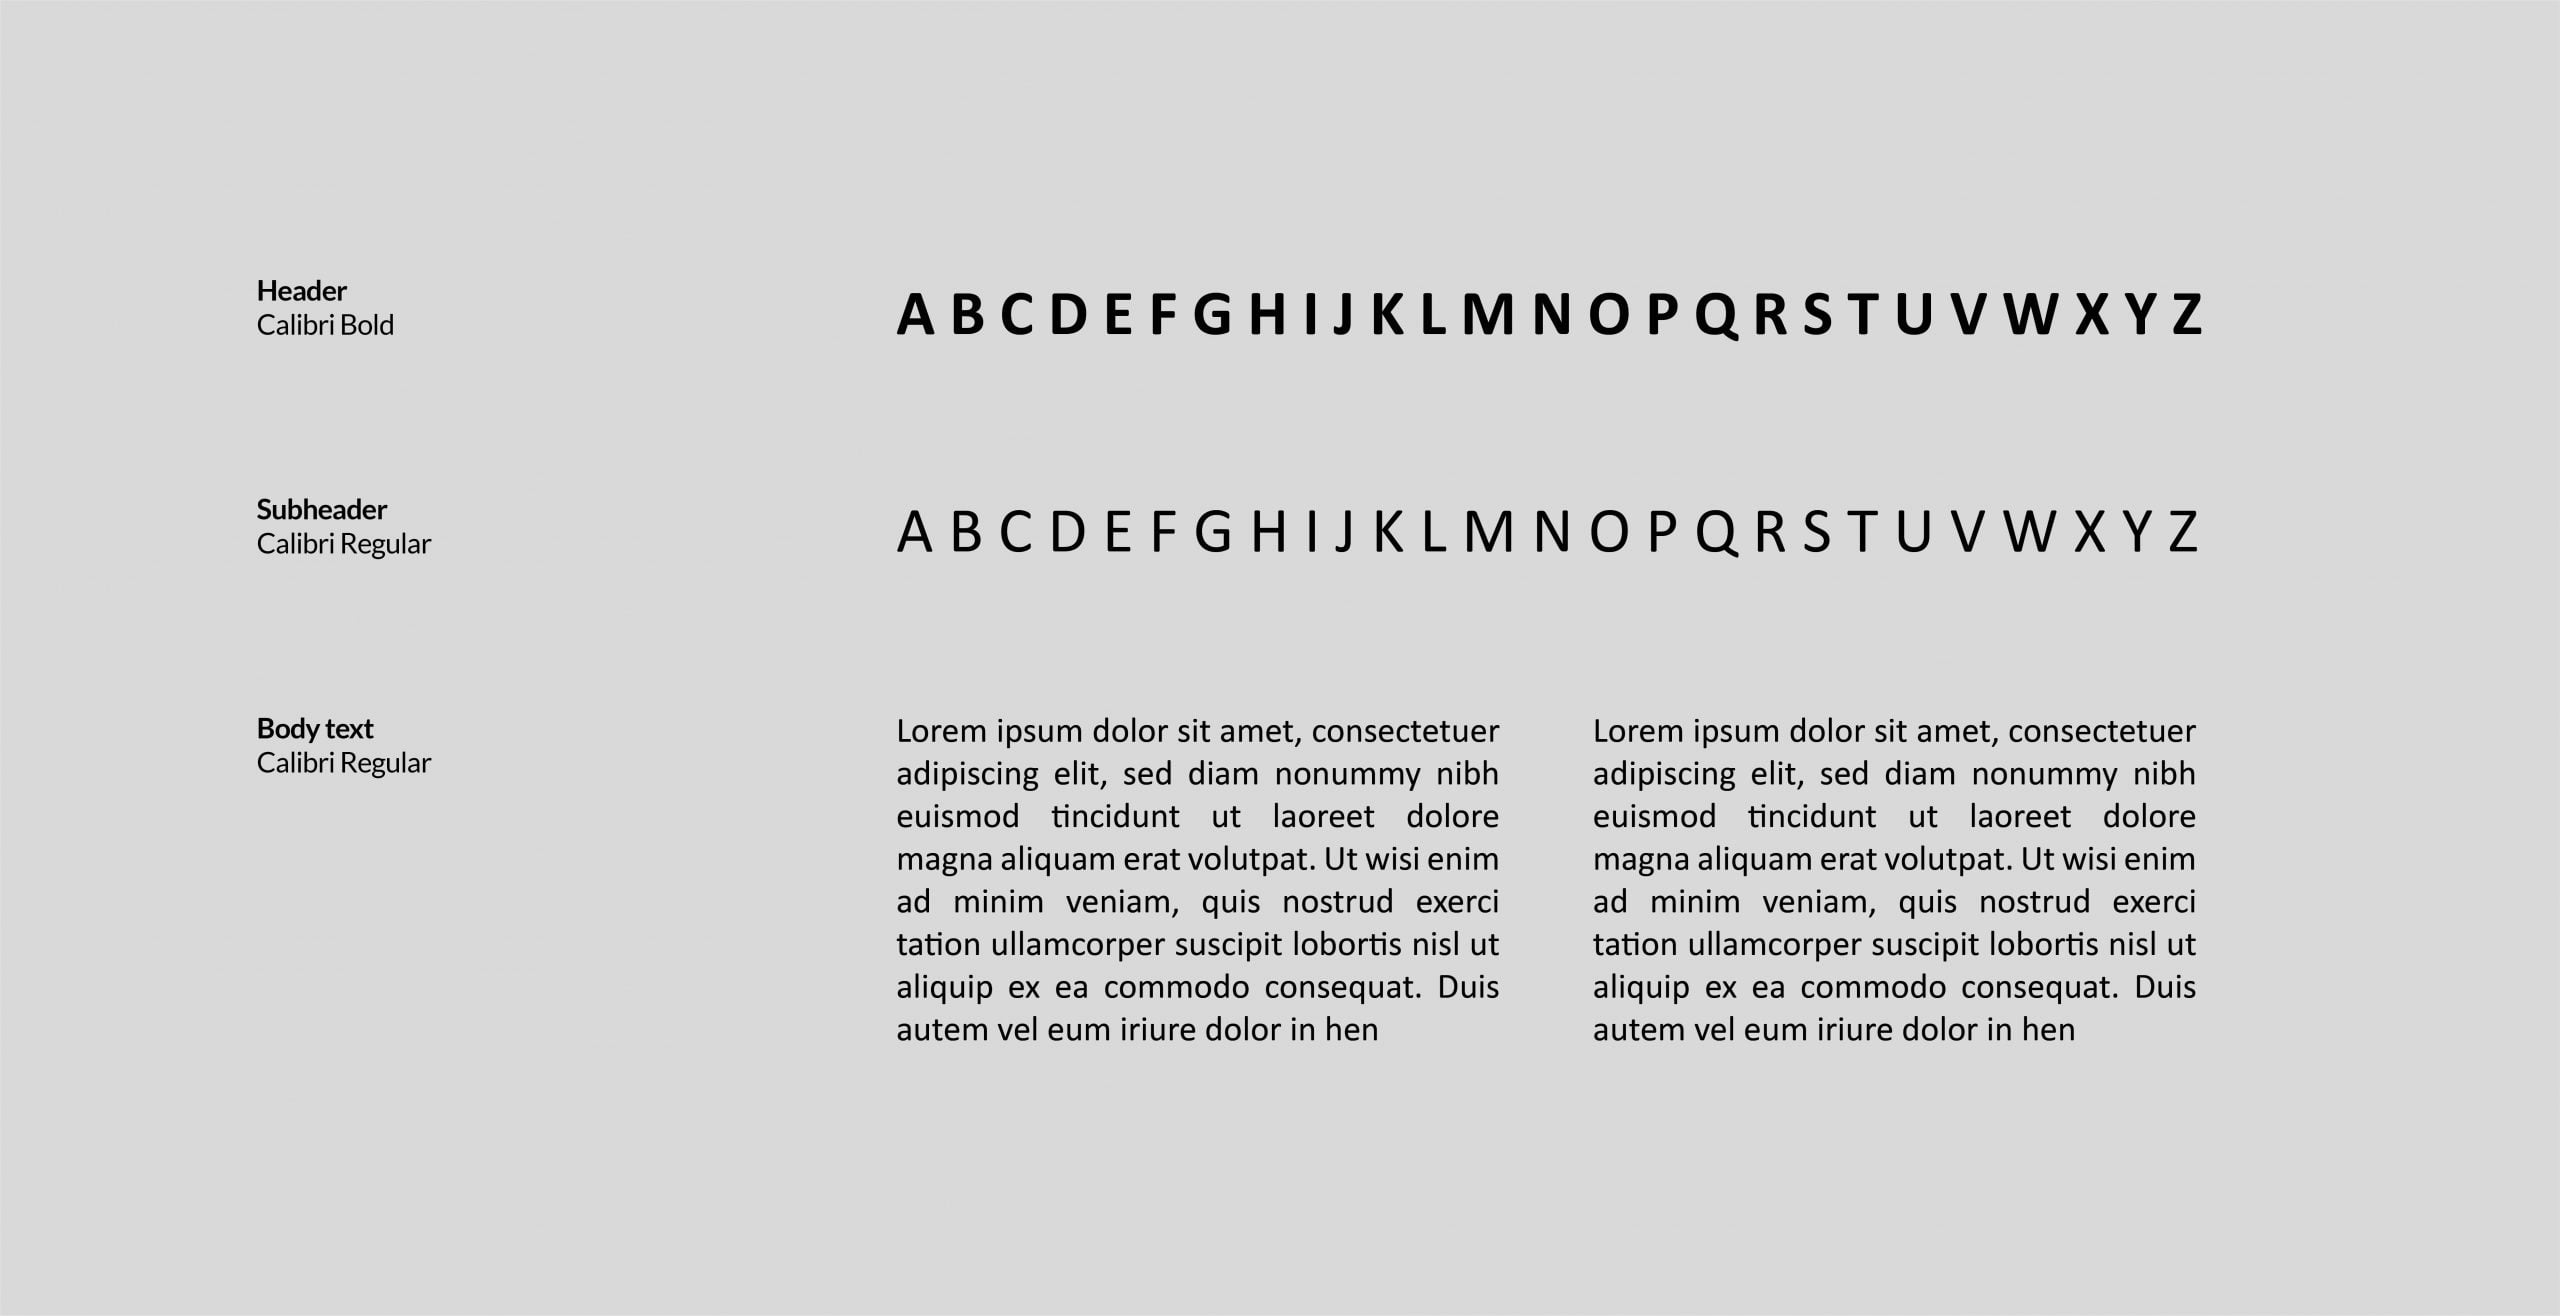 8_GBO_Innovation_makers_Houweling_Typography